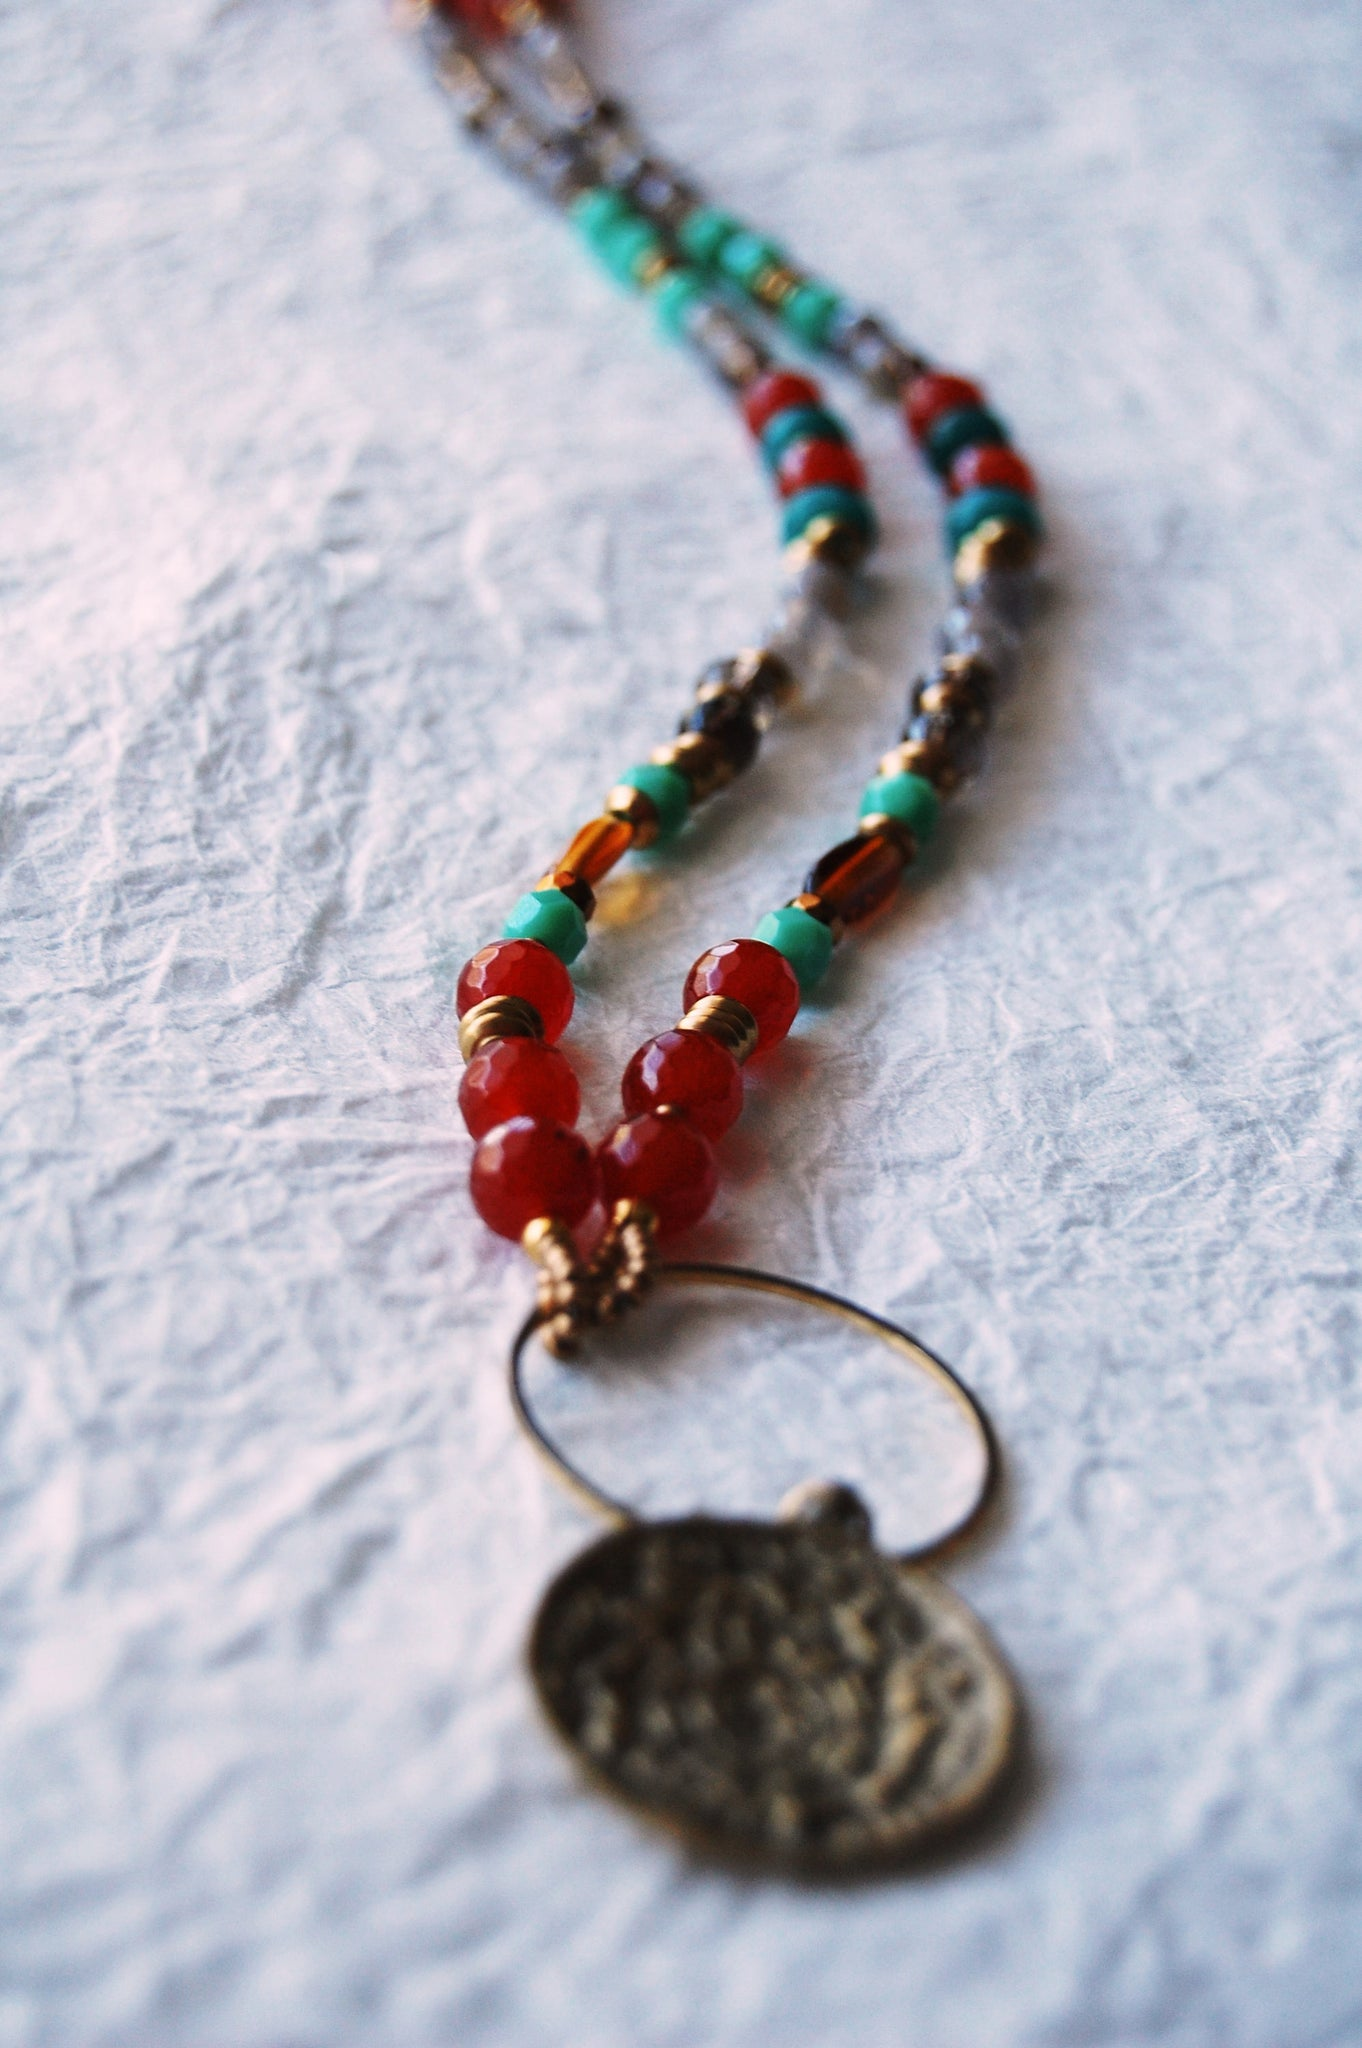 Natural Stones Carnelian Turquoise Smokey Quartz Czech Agate Beads Red Orange Gray Gold Tibetan Calendar Pendant Necklace